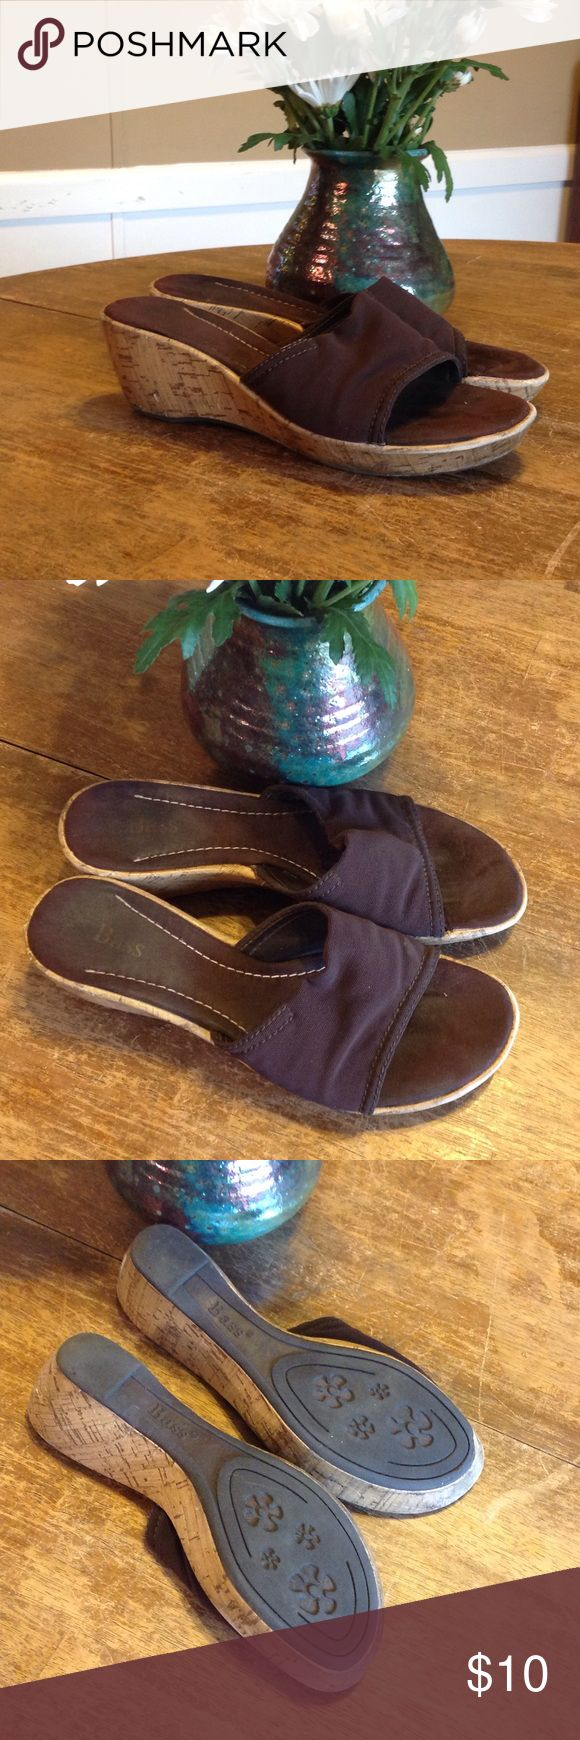 Bass Slip On Wedges Bass. Slip On Wedges. Chocolate Brown. Great Condition. Bass Shoes Wedges